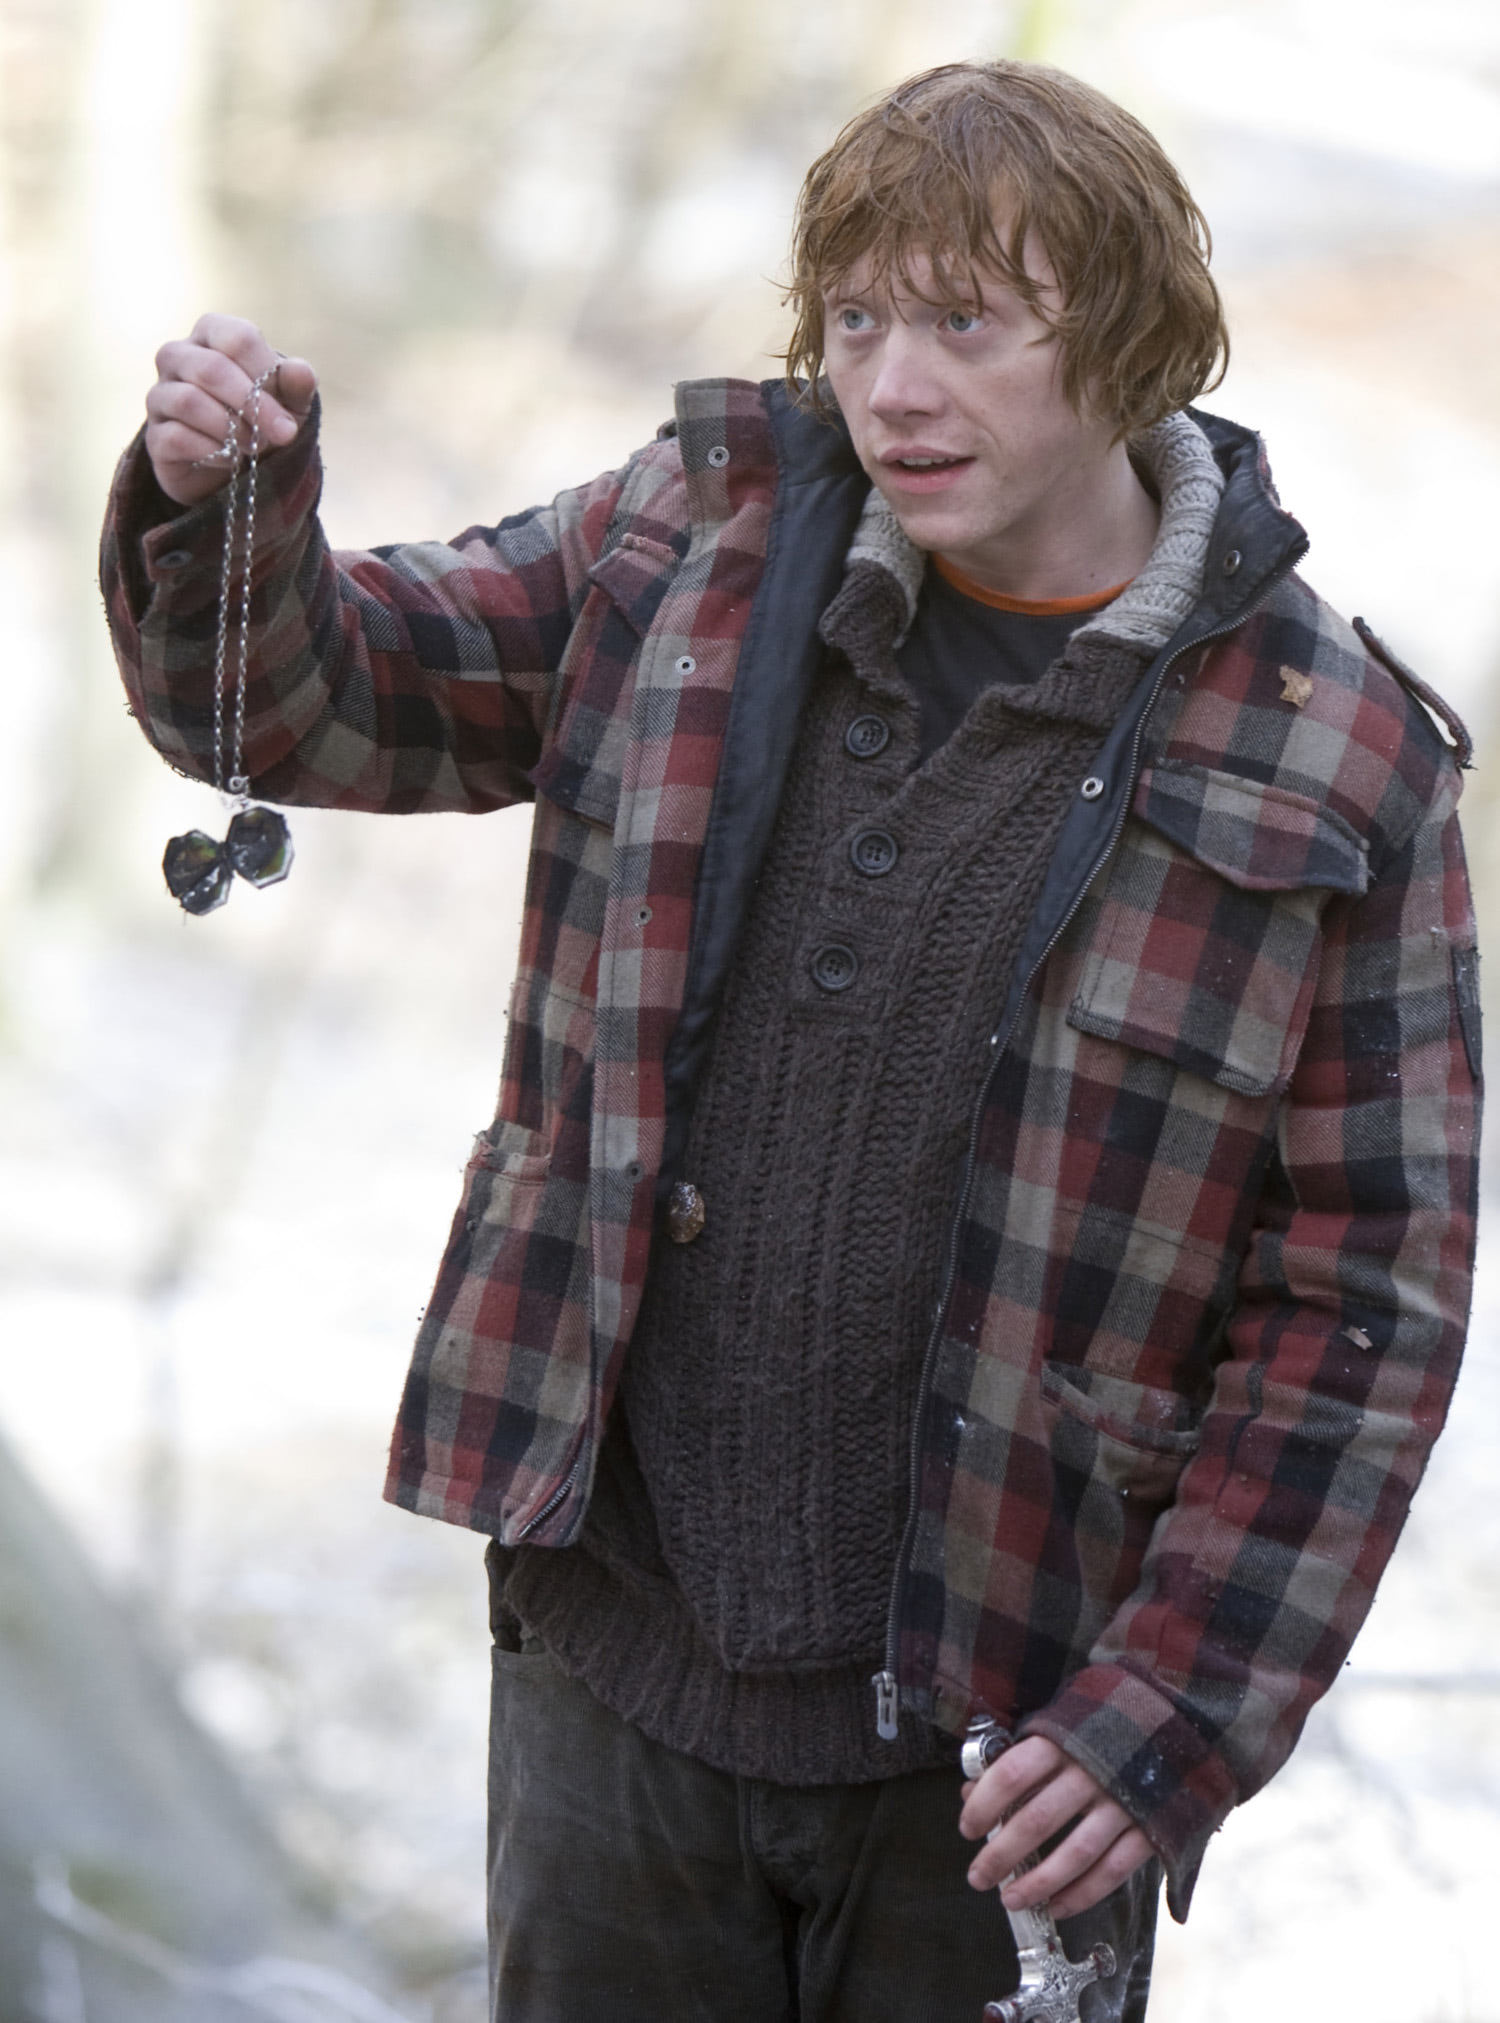 Ron with the destroyed locket